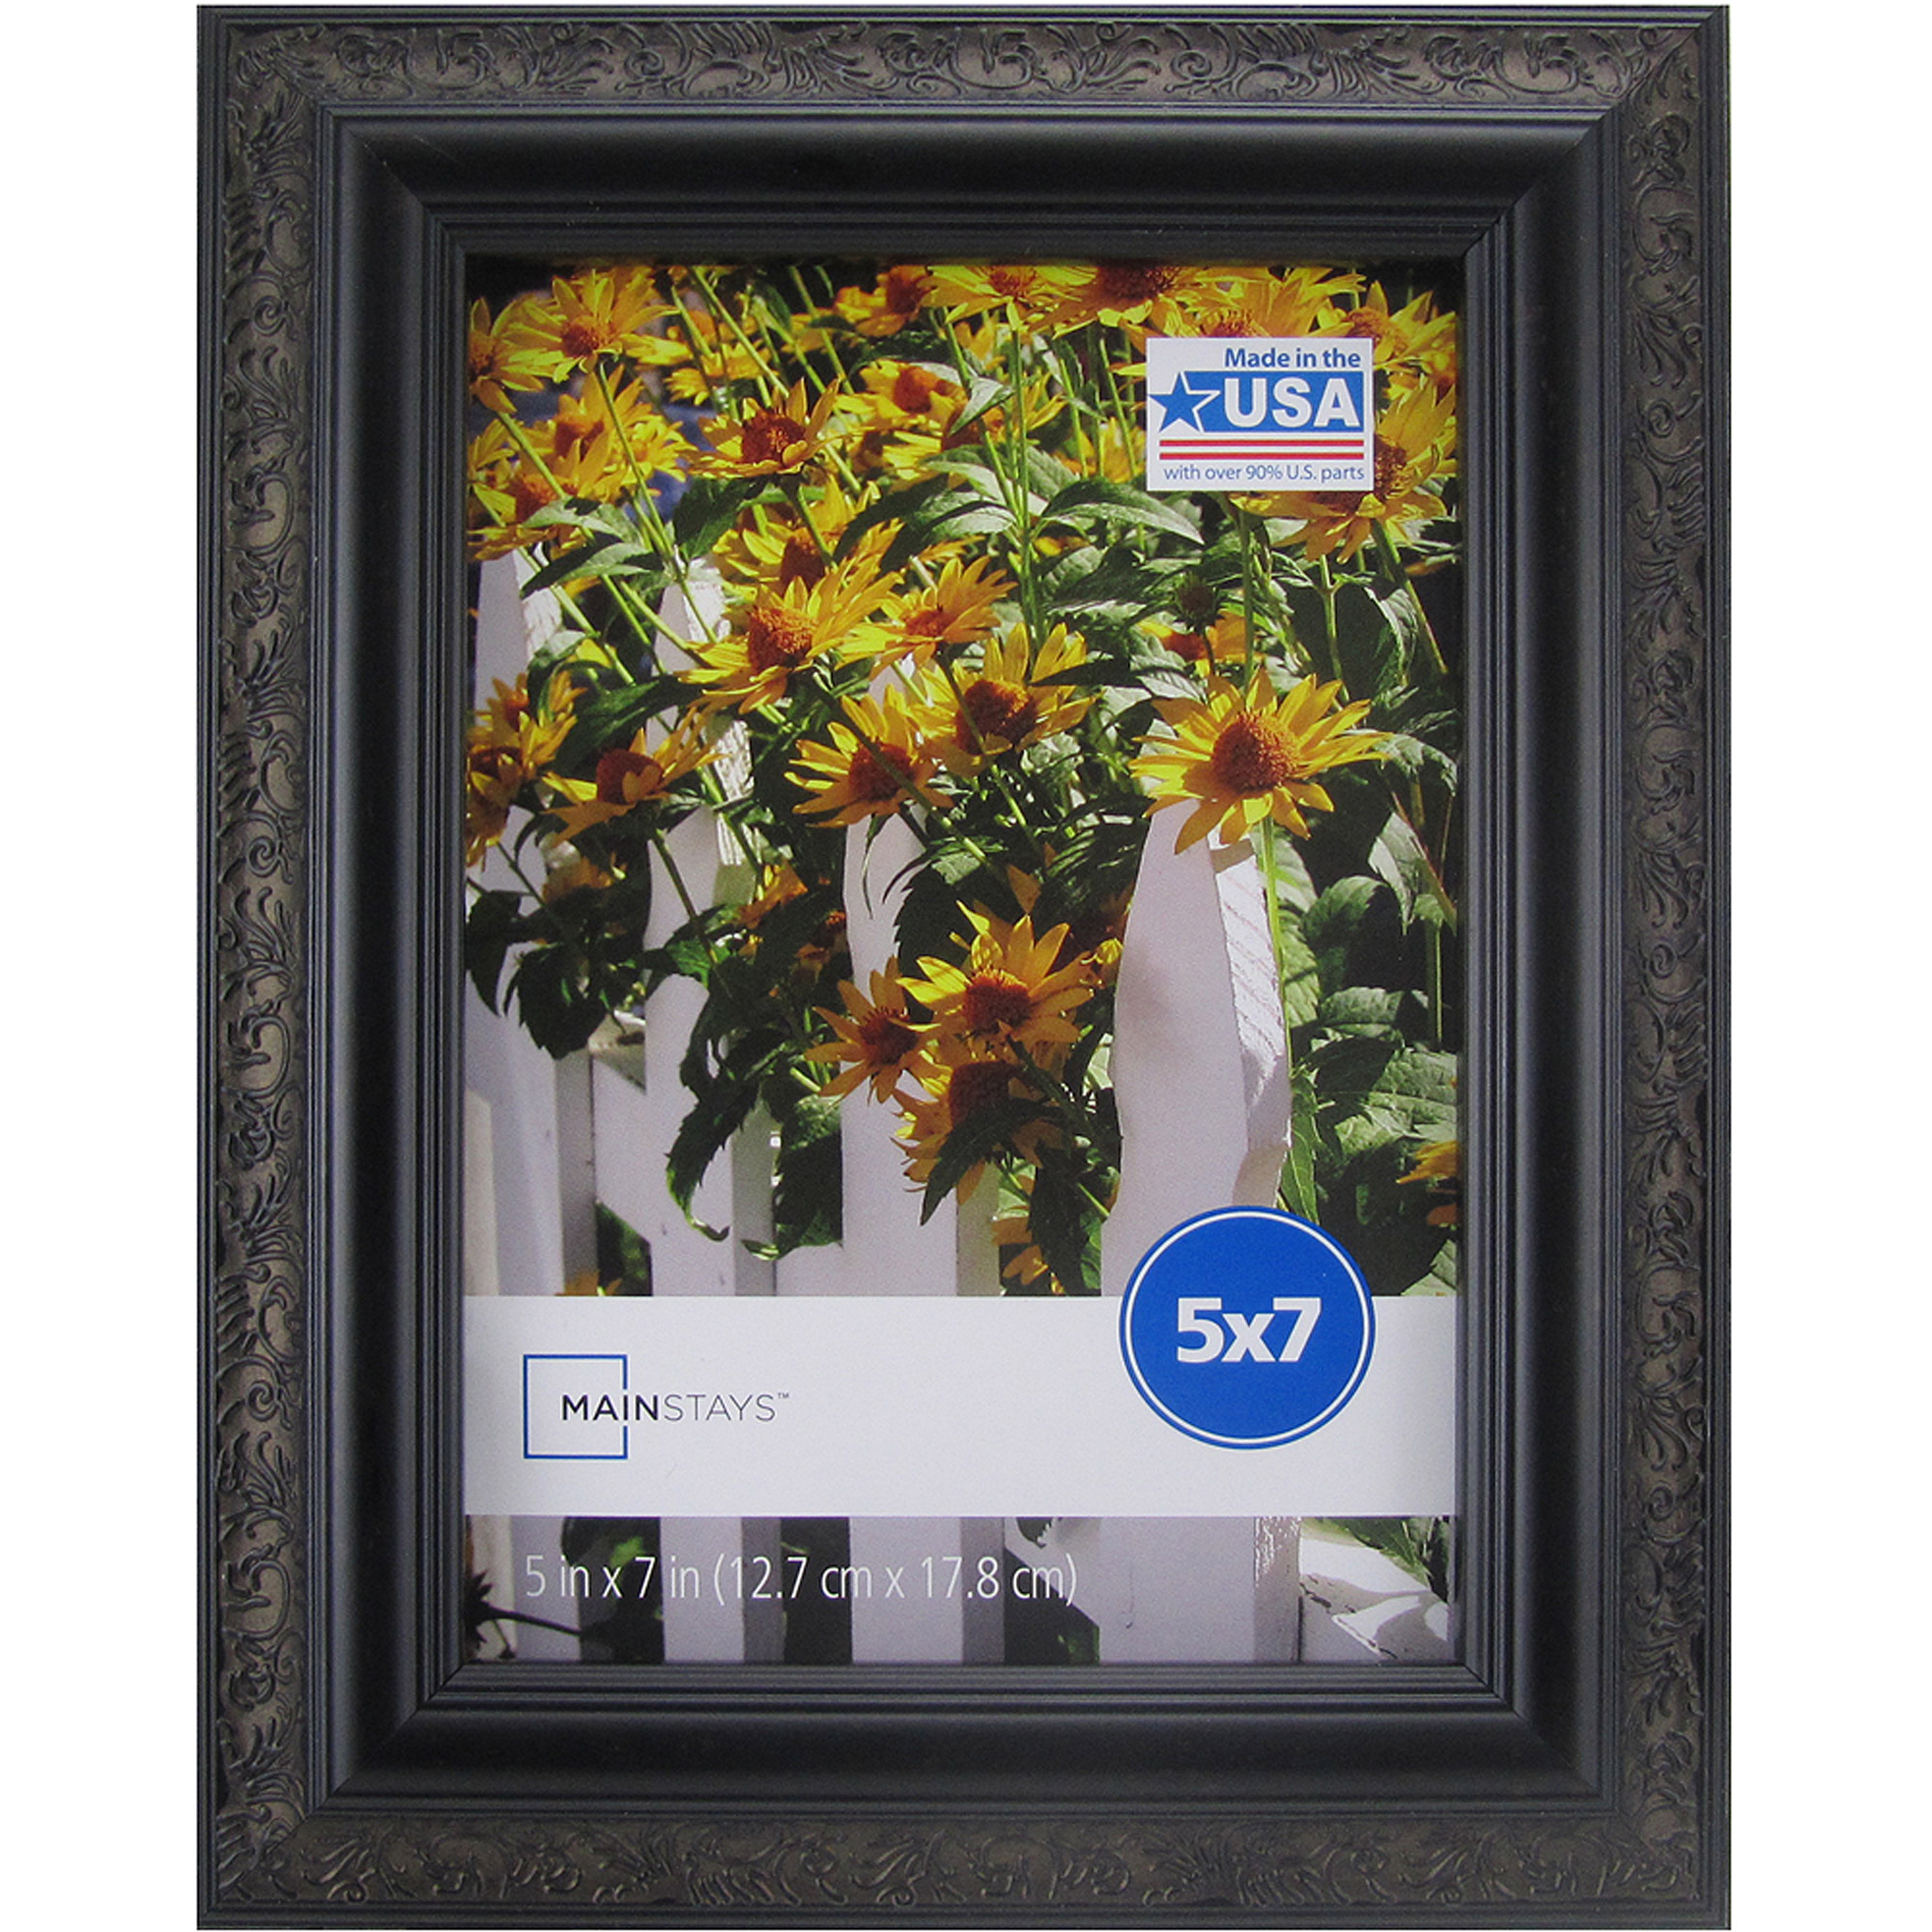 Mainstays 5x7 Ornate Picture Frame, Black